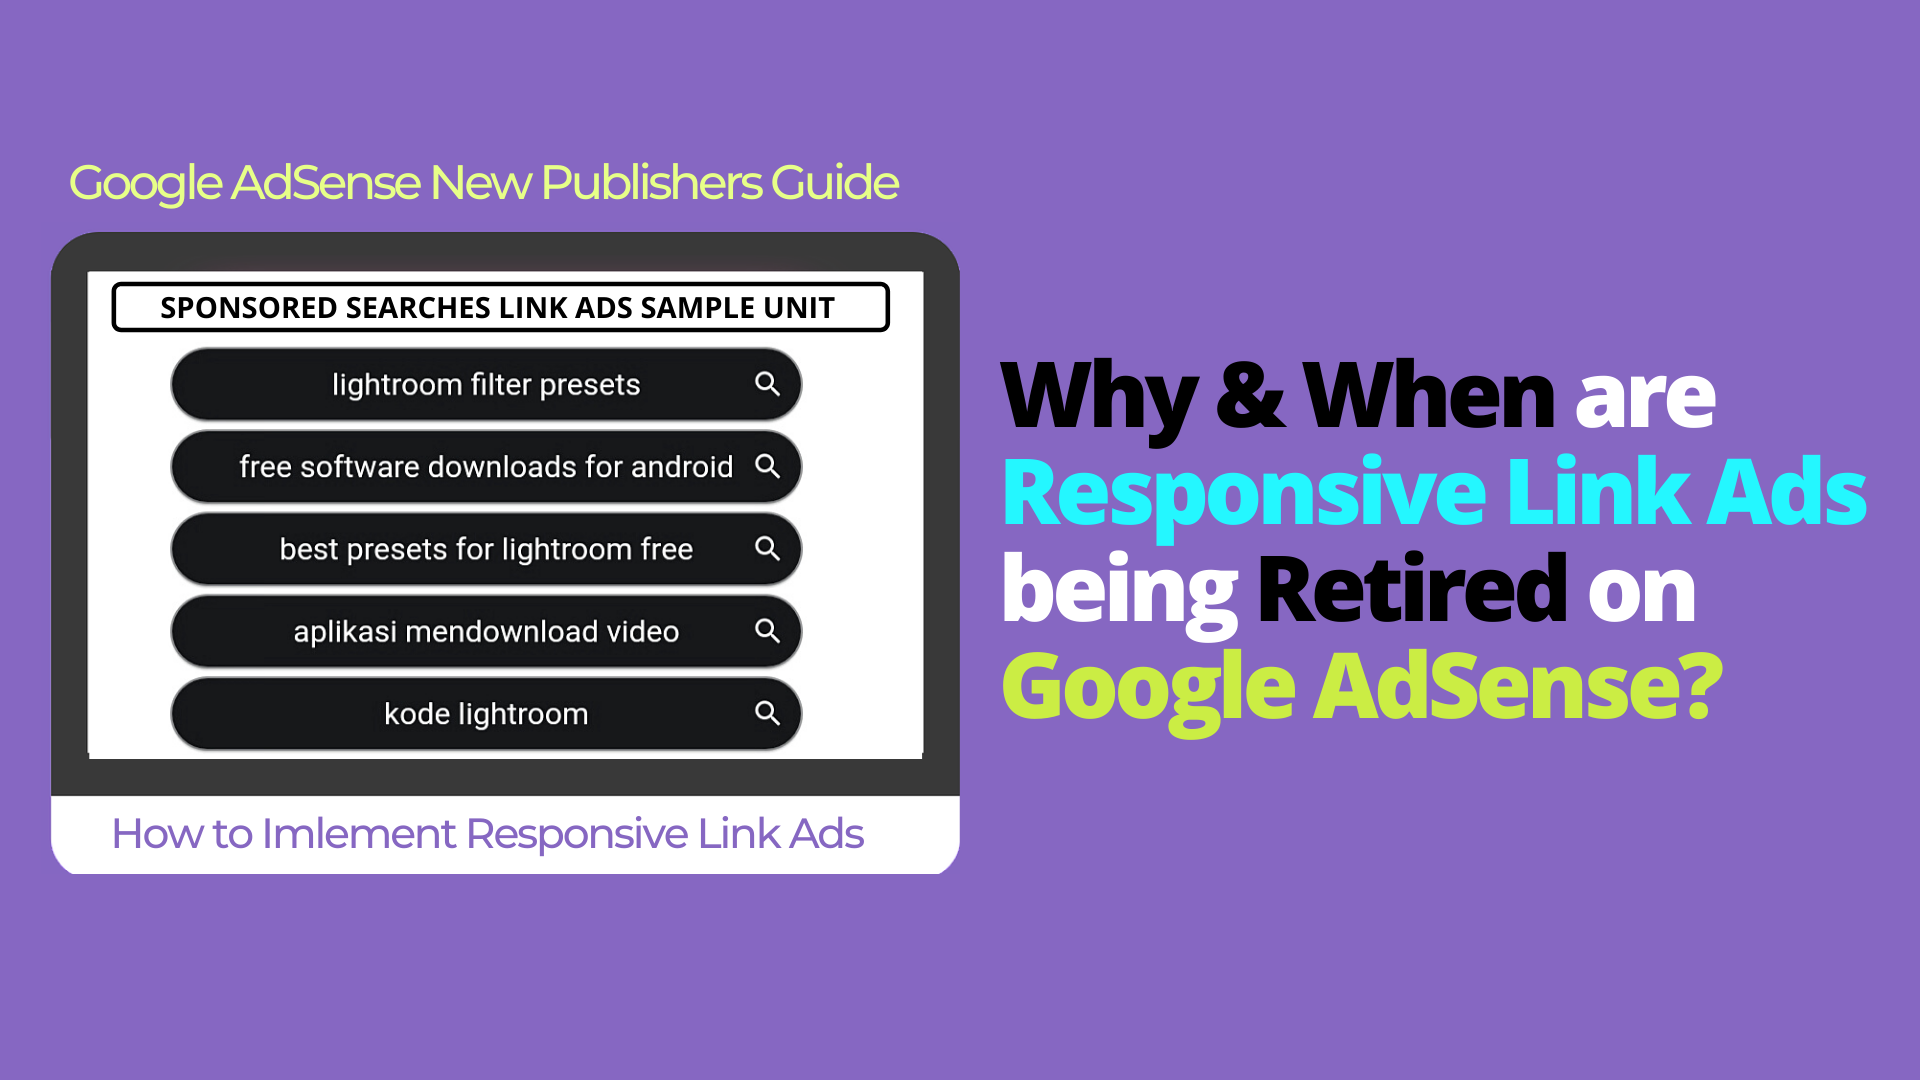 What are AdSense Responsive Link Ads?